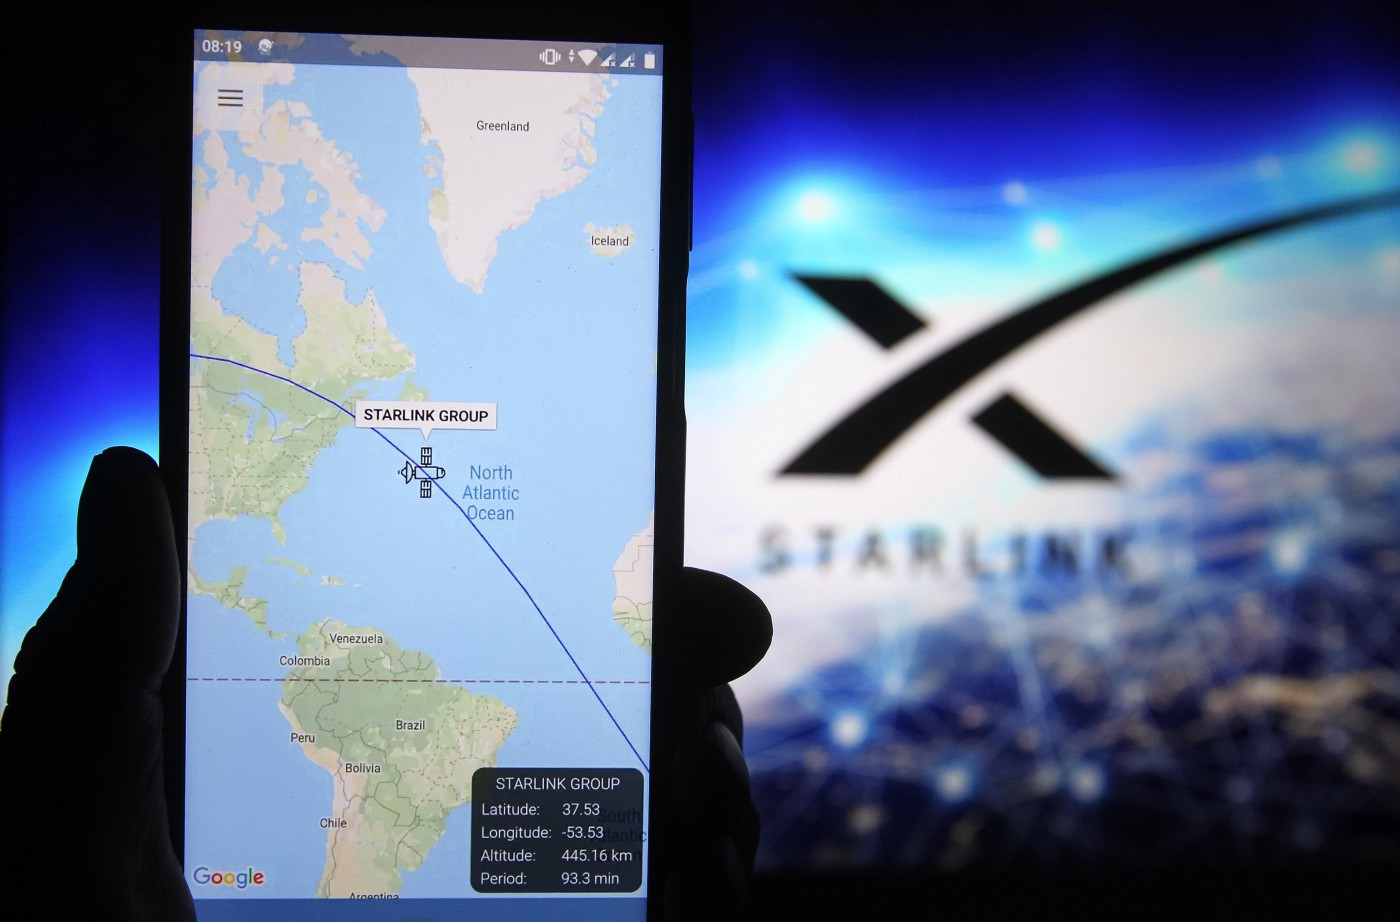 A satellite tracker image is seen displayed on a smartphone with a Starlink logo in the background